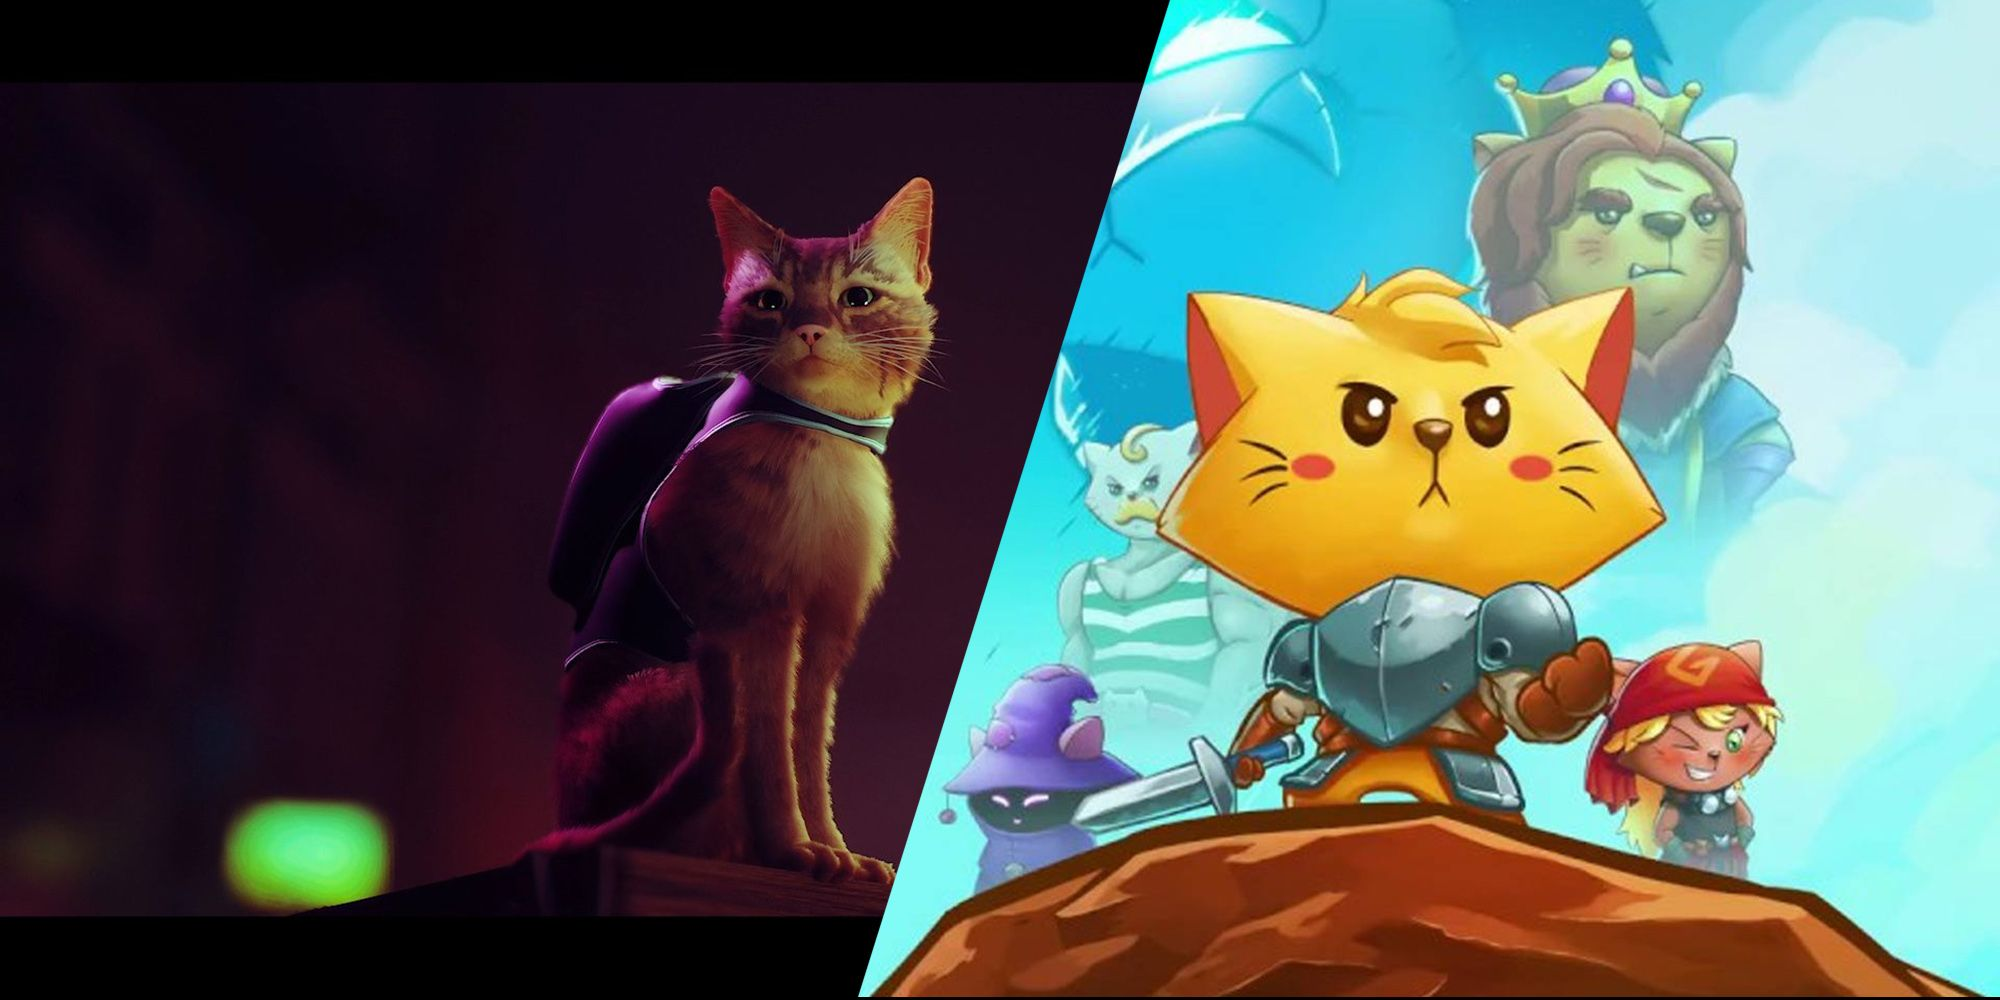 PS5: 5 Cat Games to Tide You Over Until Stray